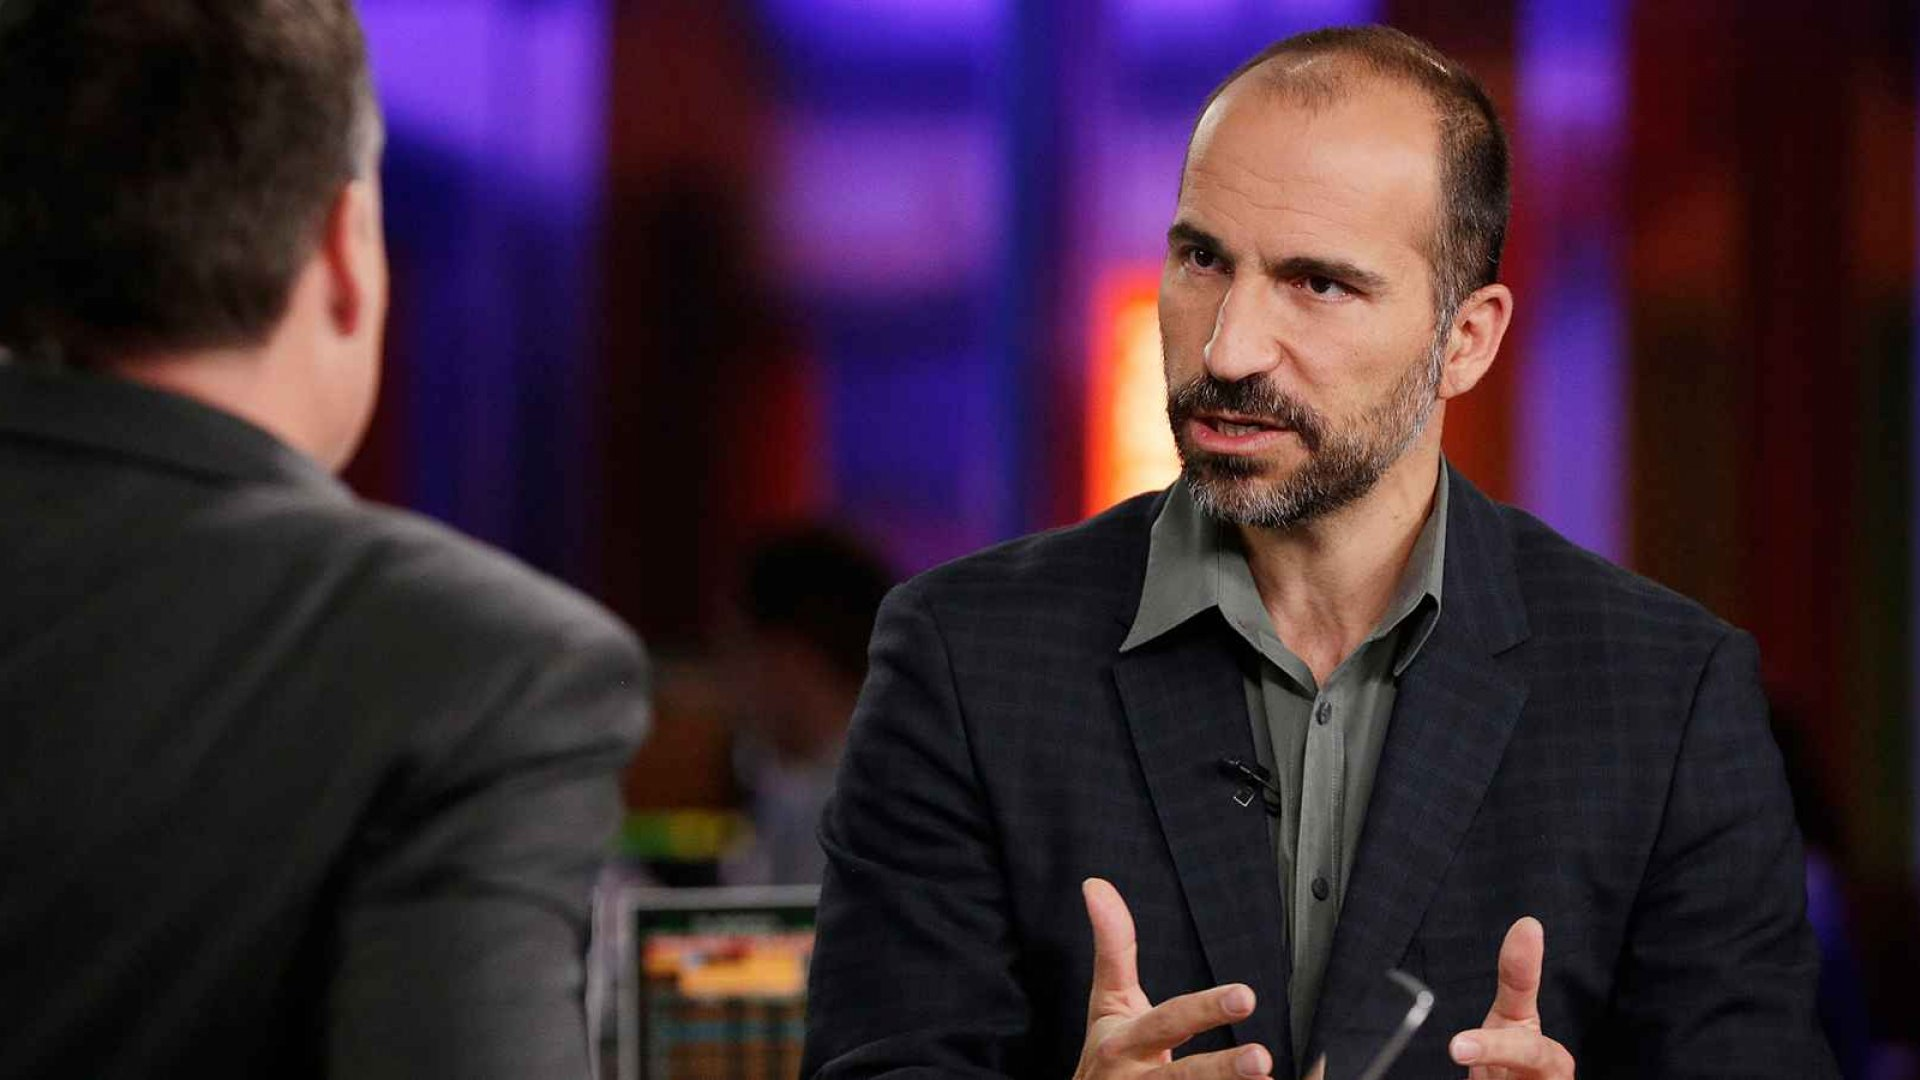 Uber CEO Dara Khosrowshahi (right).